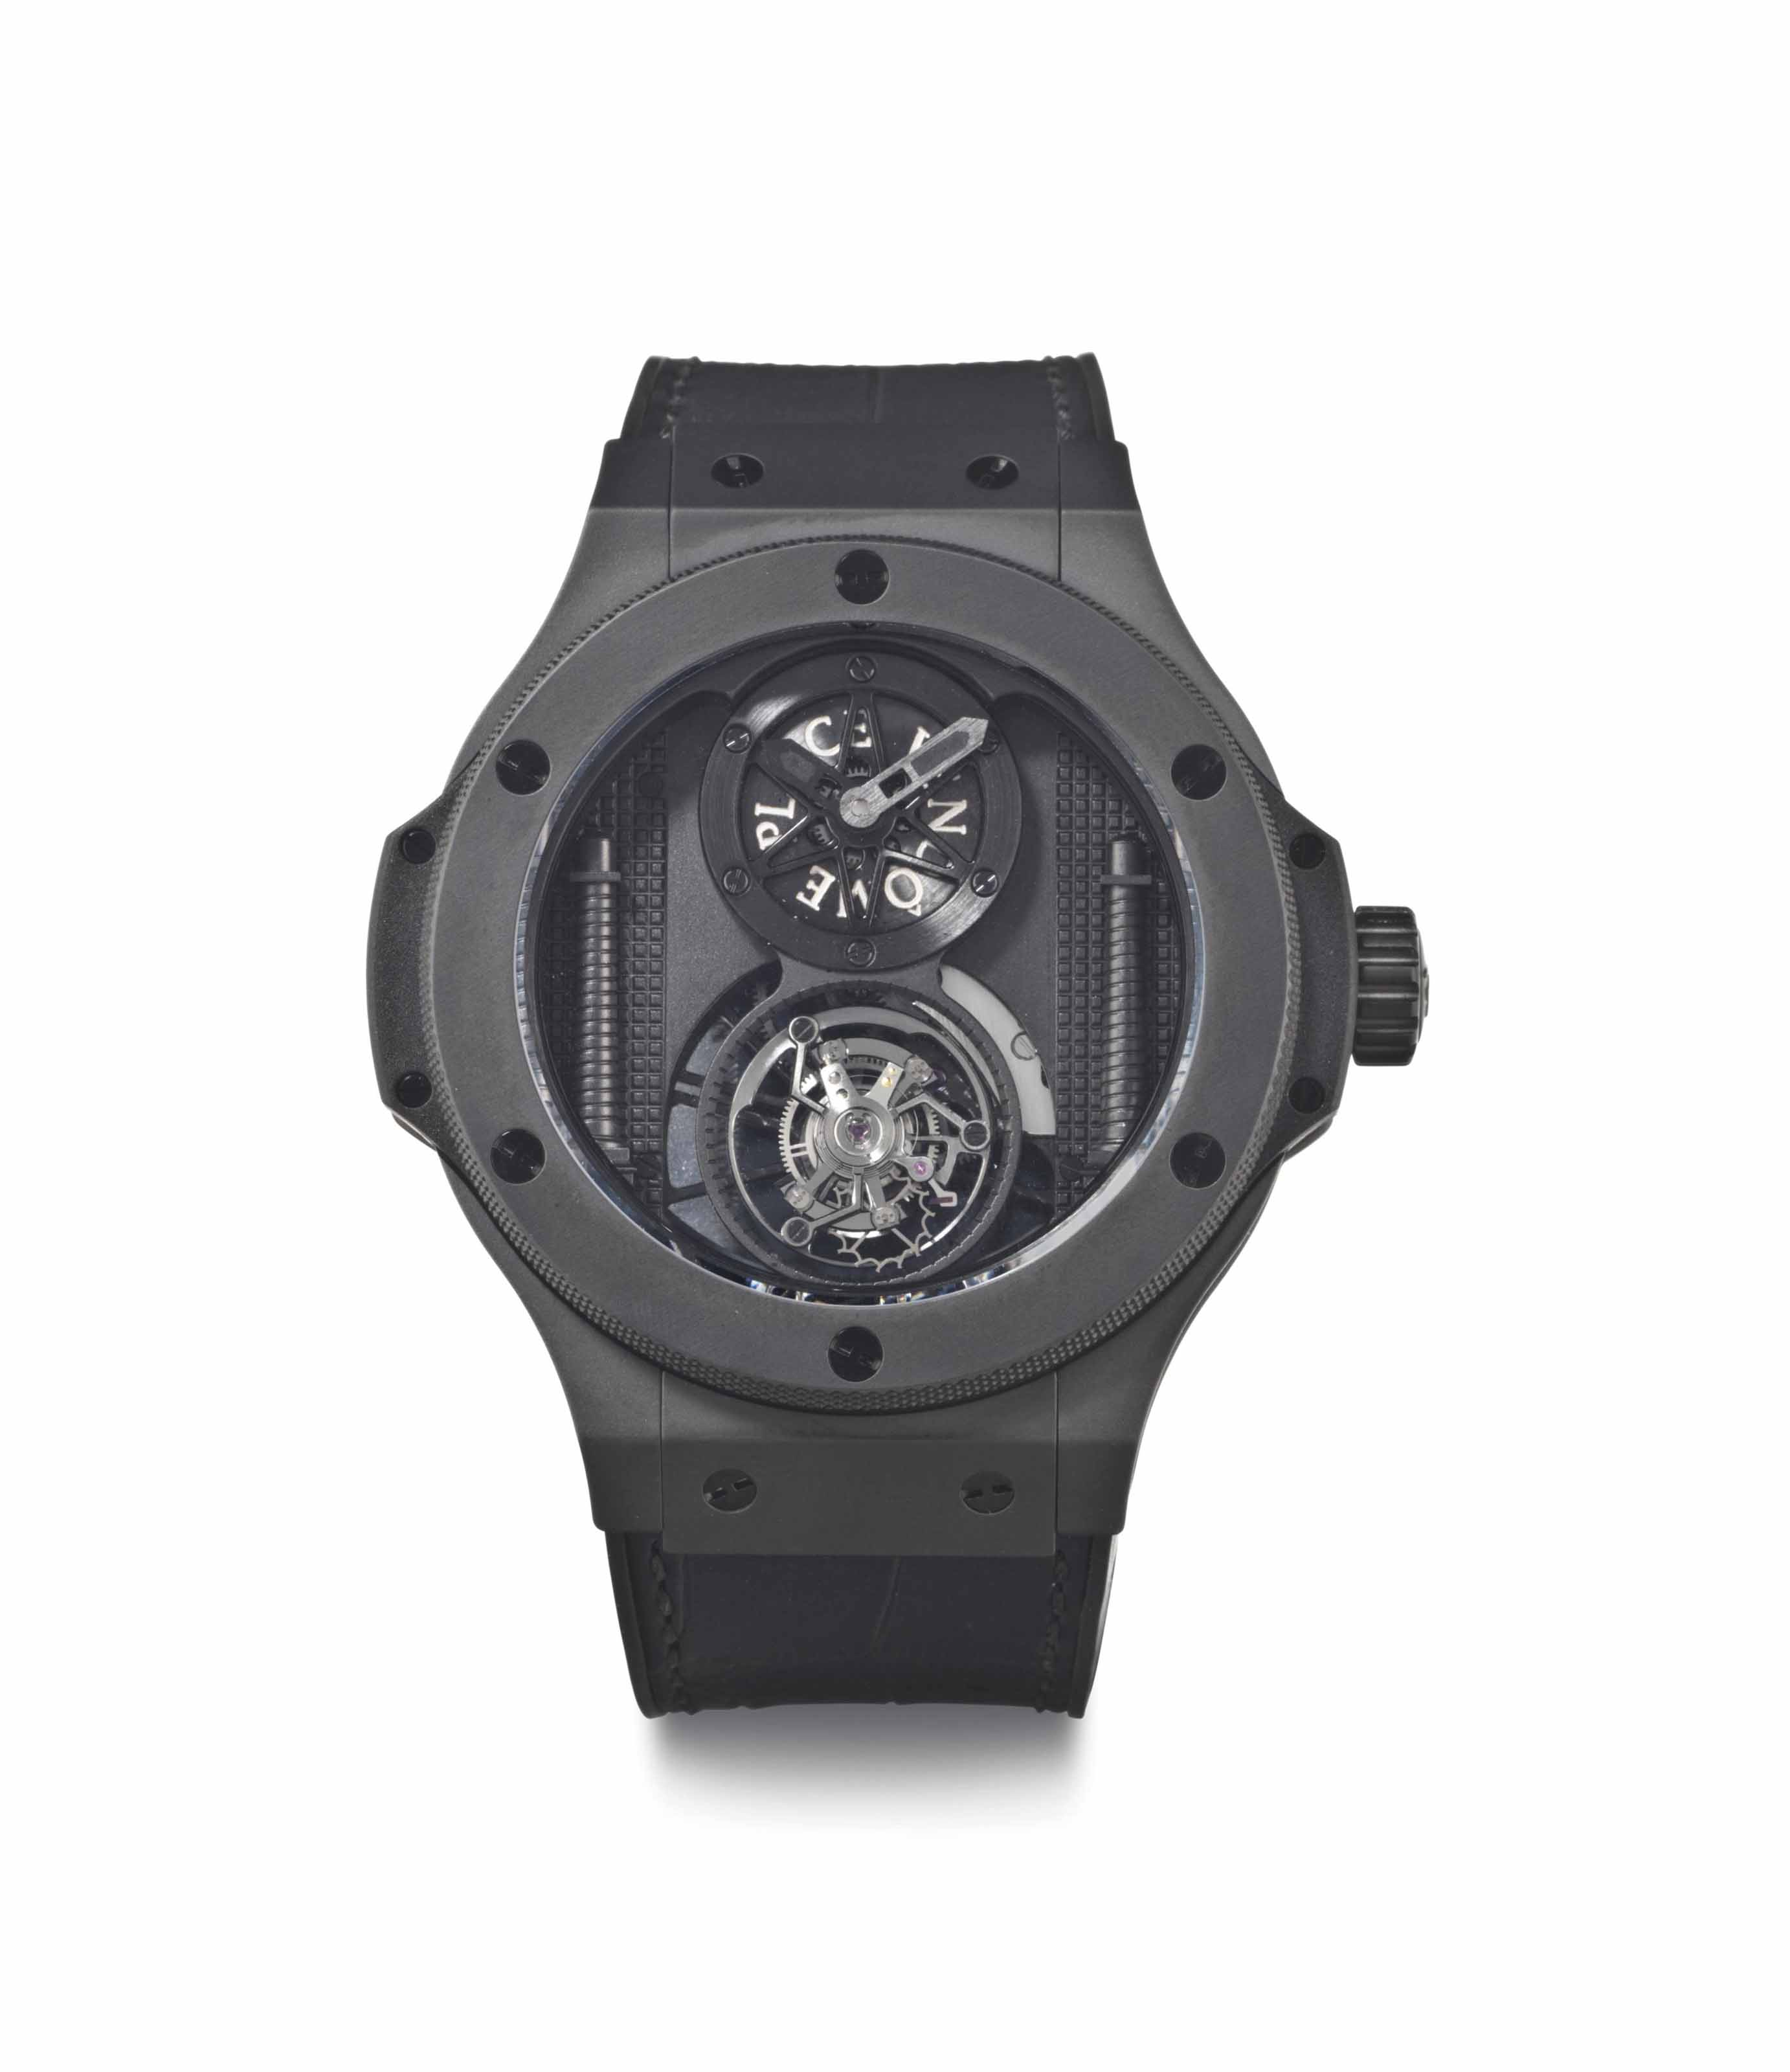 Hublot. A Limited Edition Ceramic Black Wristwatch with Tourbillon